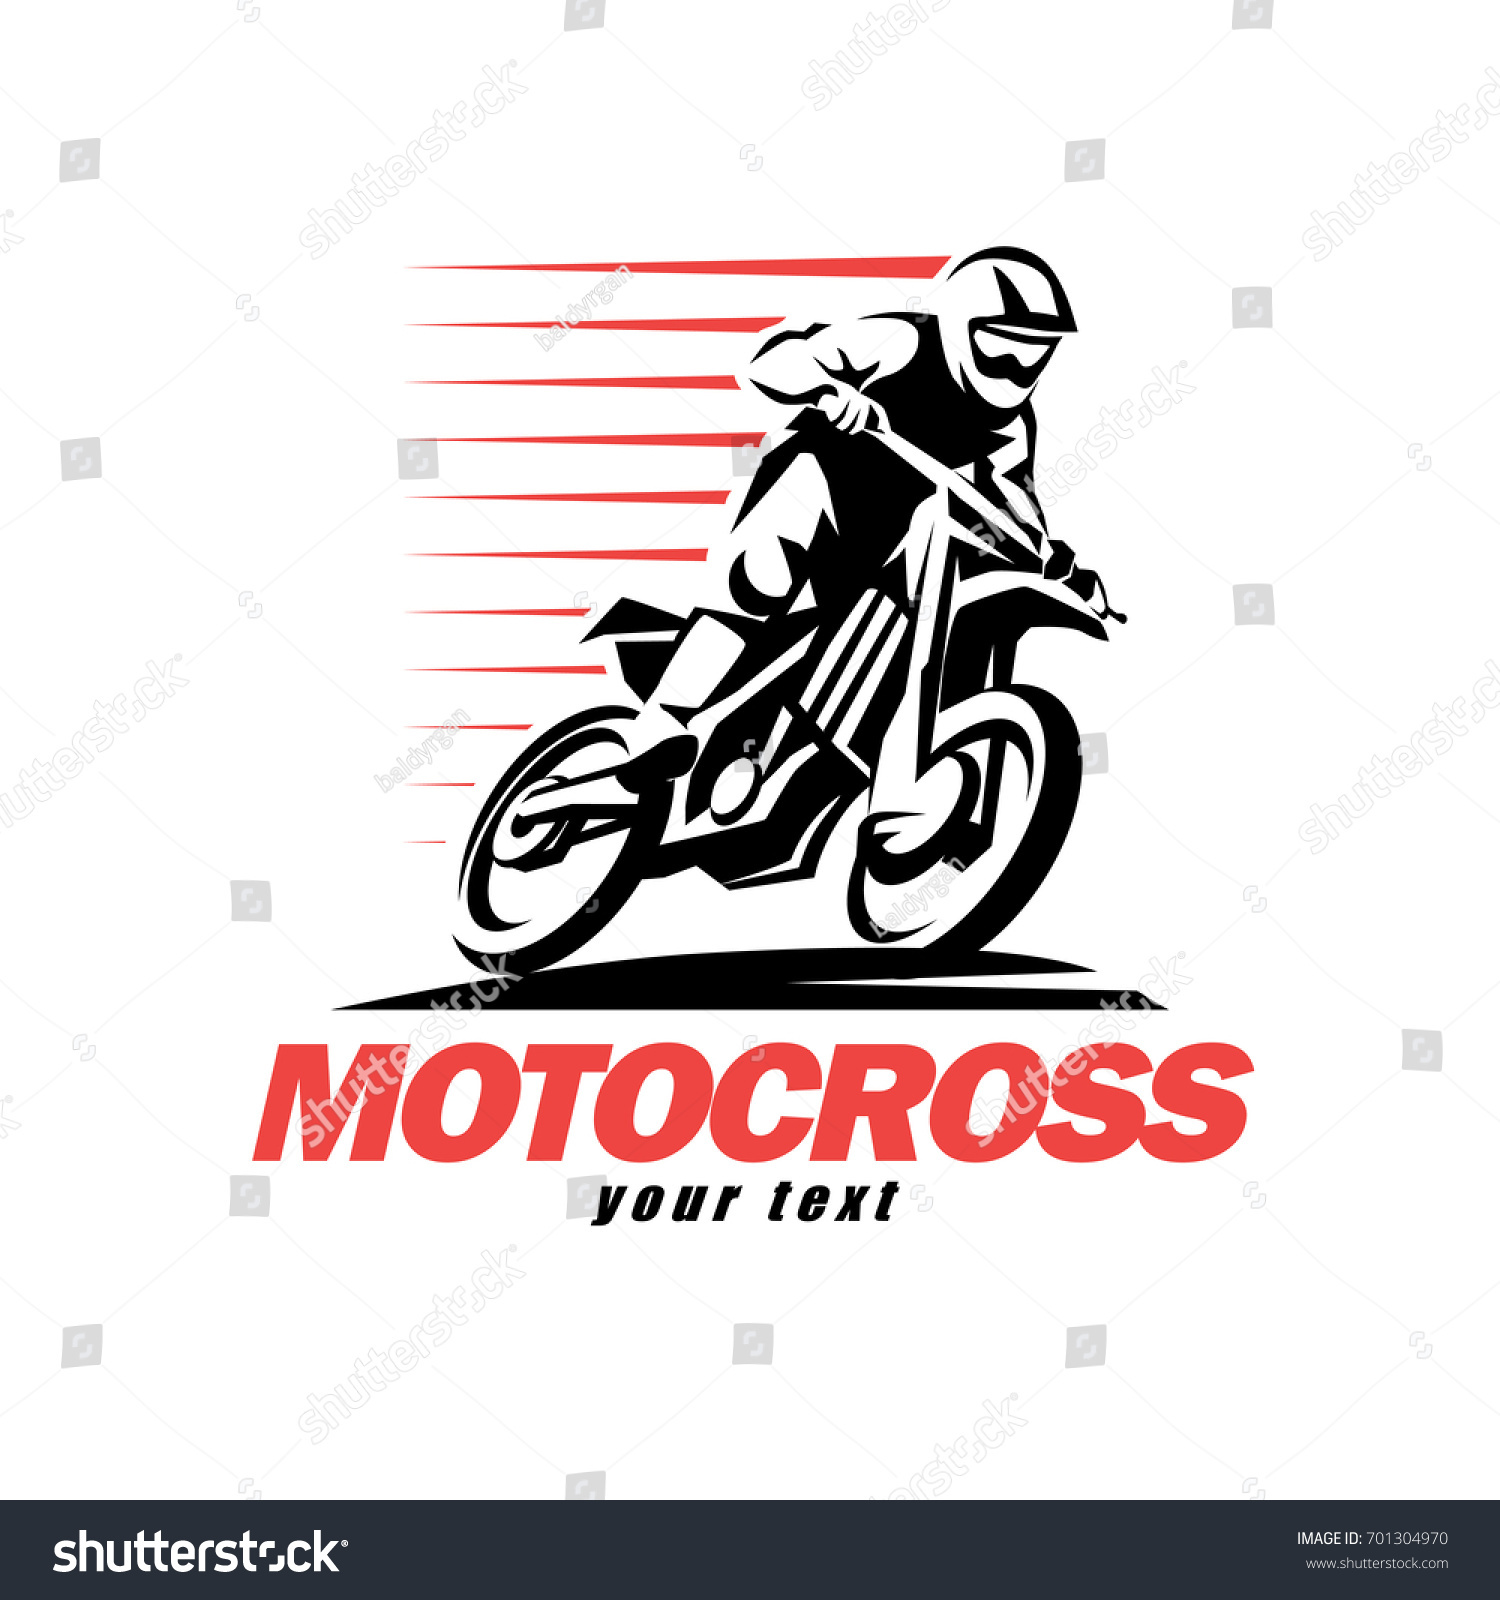 Motorcycle Racing Logo Design Motocross Stylized Vector Symbol Design Elements Stock Vector